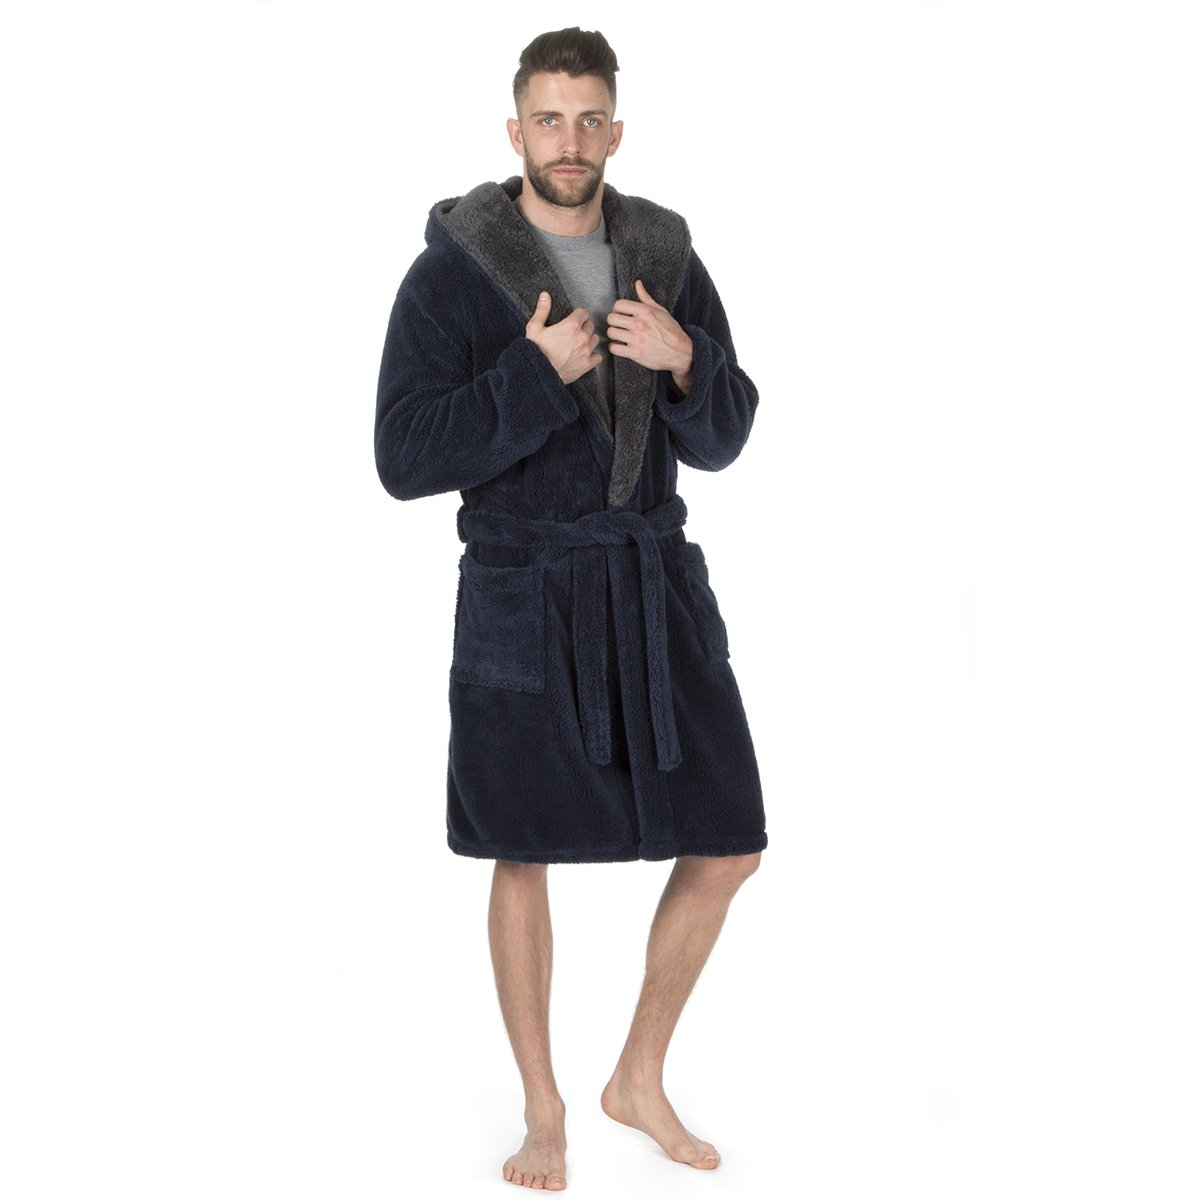 Pierre Roche Mens Plus Size Snuggle Fleece Hooded Contrast Dressing Gown. Navy Grey. Sizes 3XL 4XL 5XL 31B48